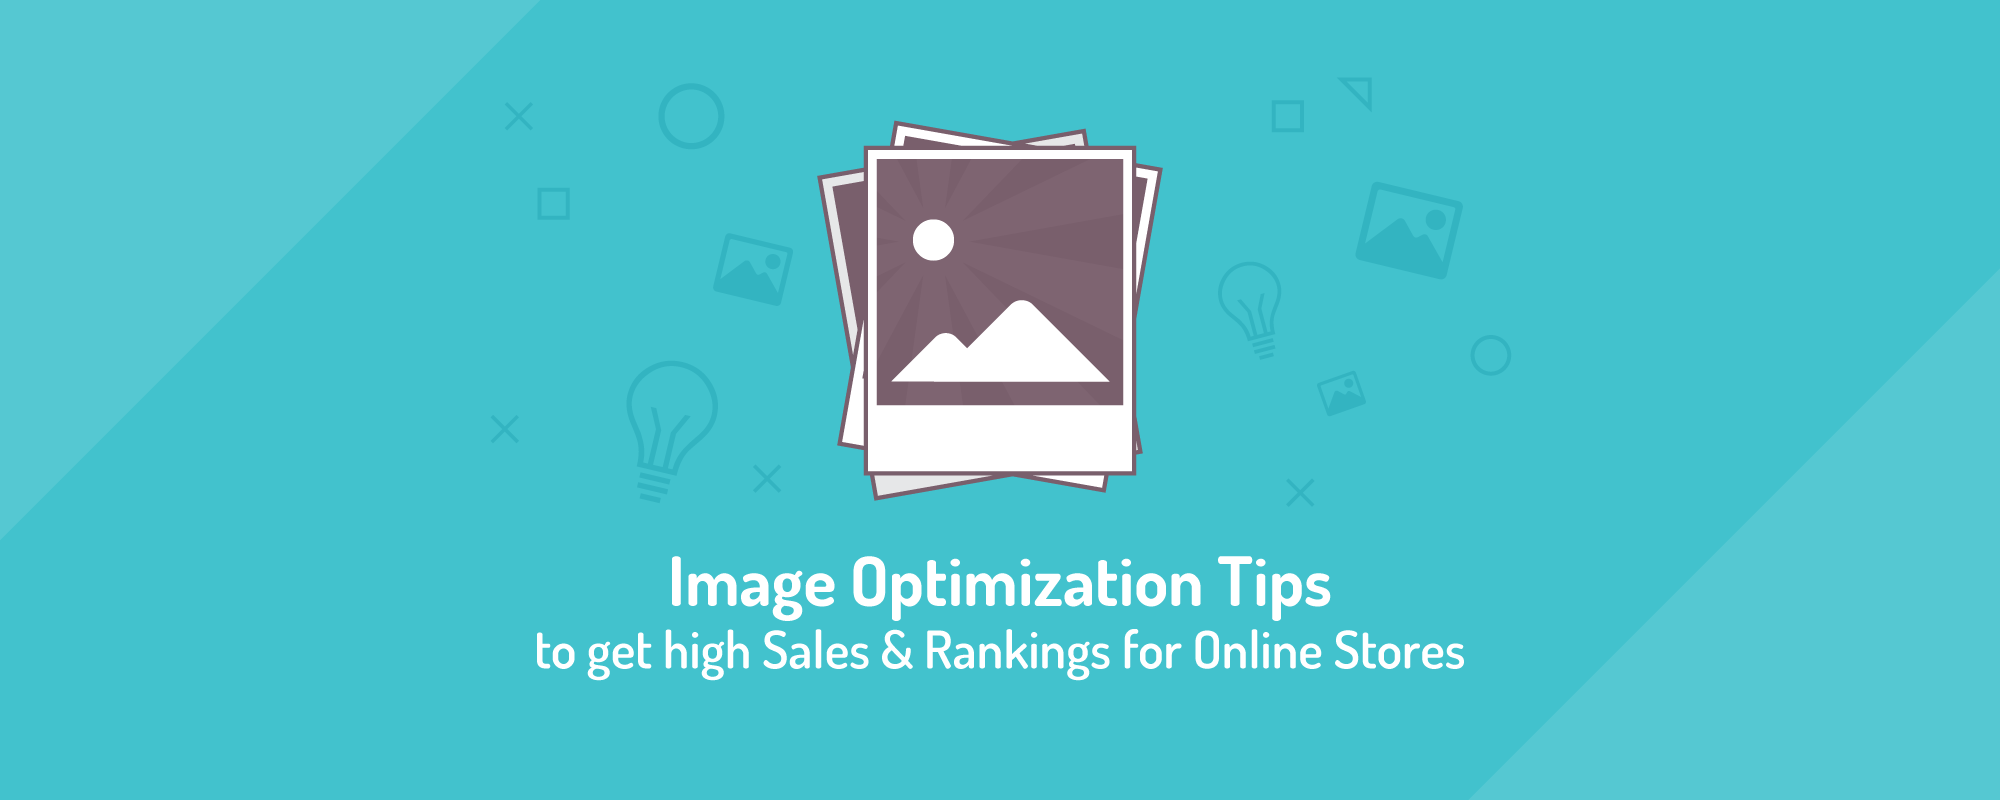 How Optimized Images Drive more Traffic, Sales & Rankings to Online Stores?